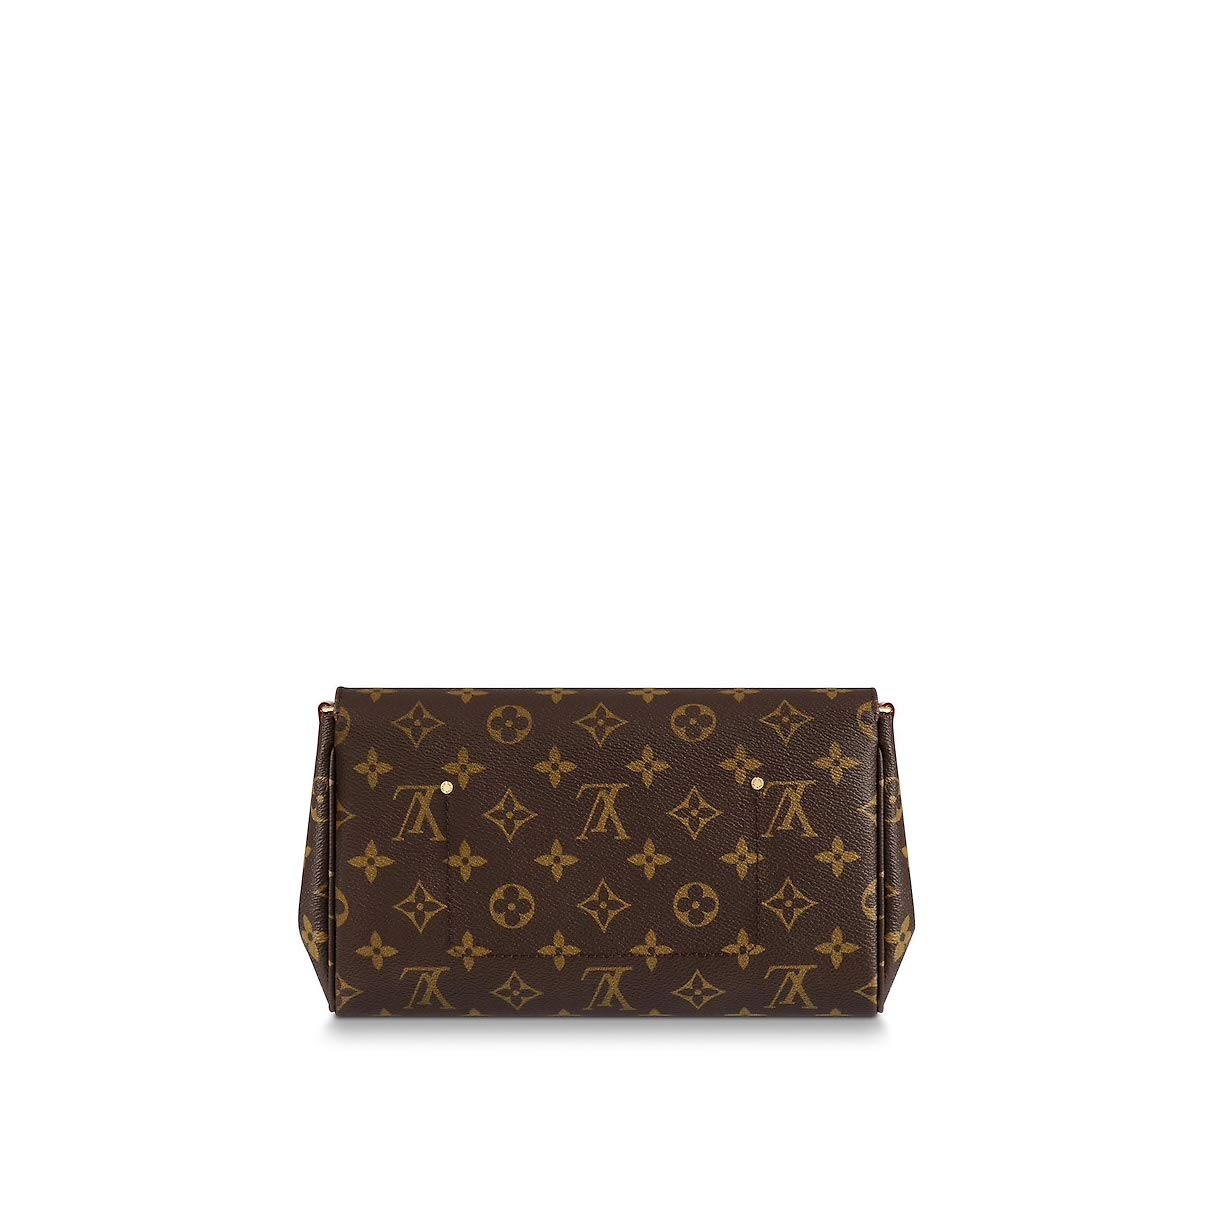 Amazon.com: Louis VUITTON Favorite mm Monogram lona m40718 ...